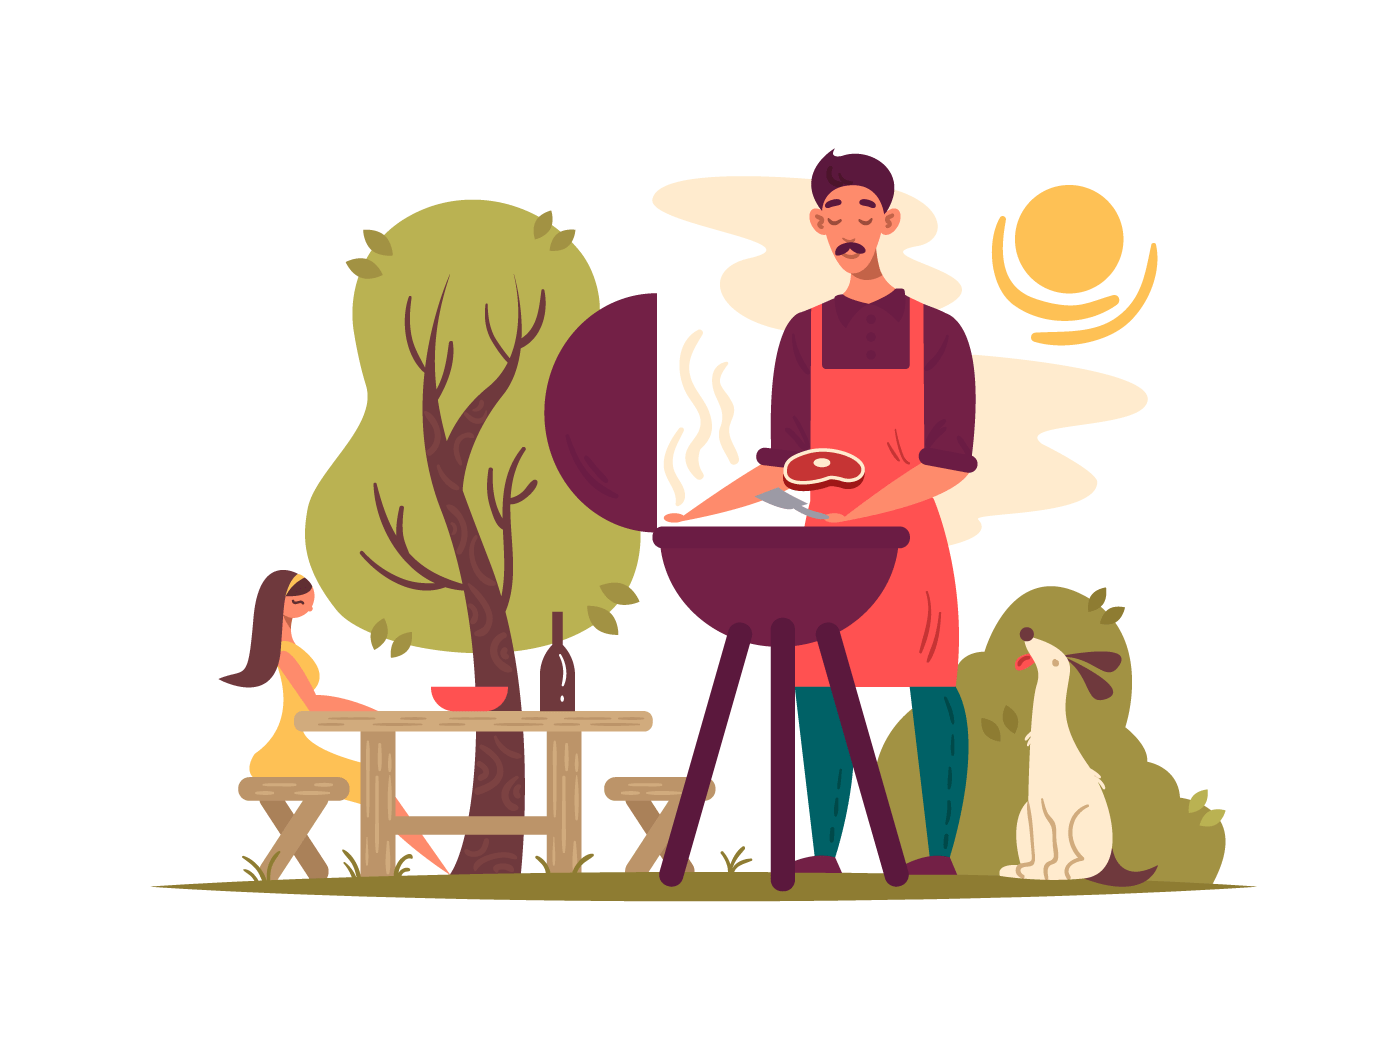 Man preparing barbecue on grill illustration